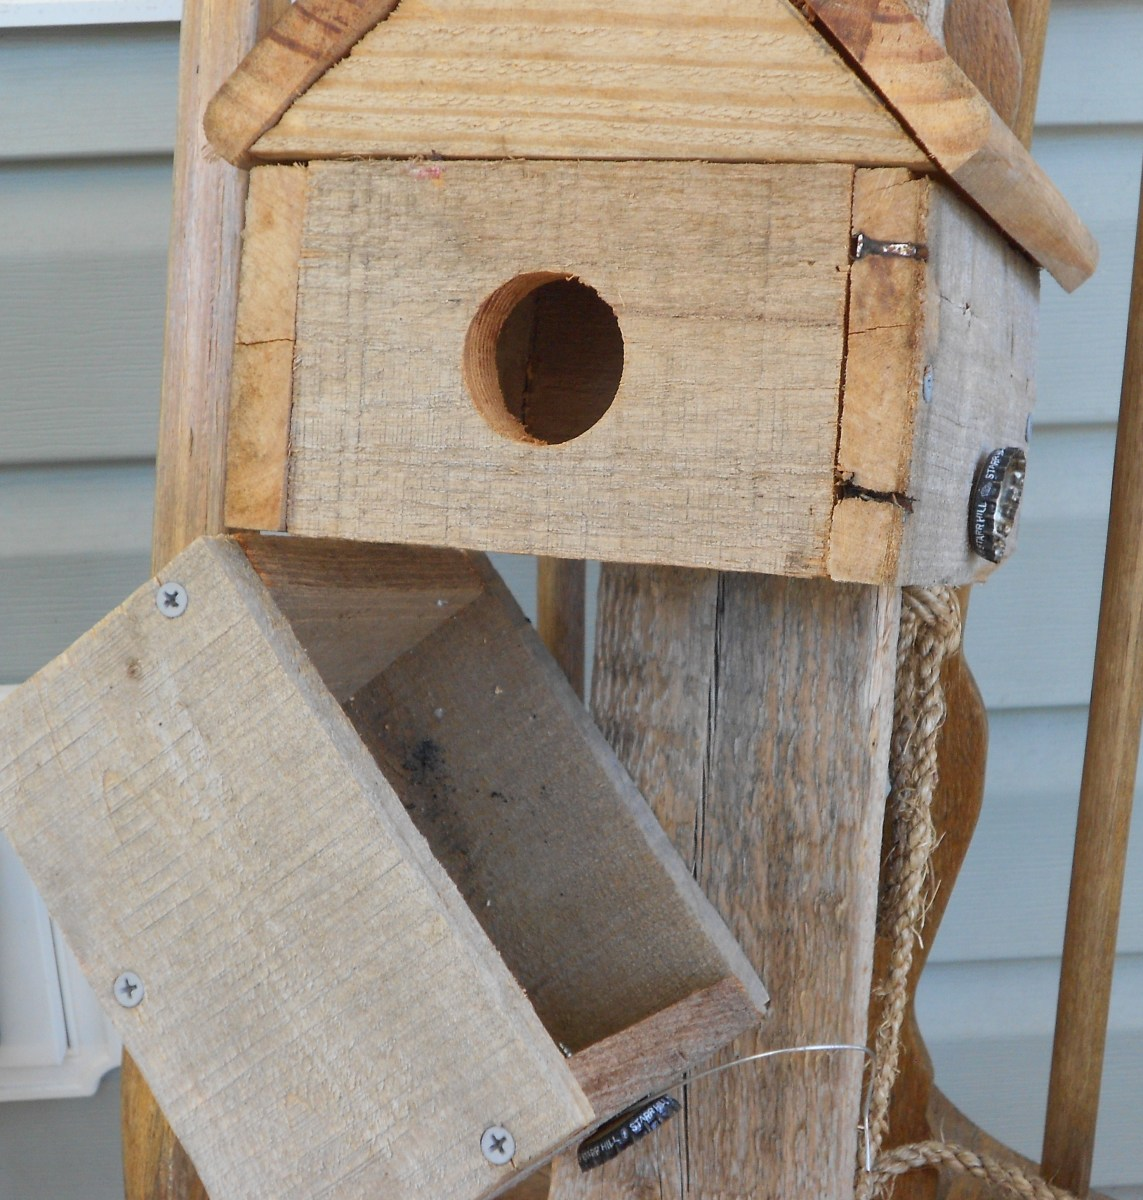 The side hinge design makes the birdhouse easy to clean.  Just make sure the entry hole for the bird house is 5-6 inches above the floor.